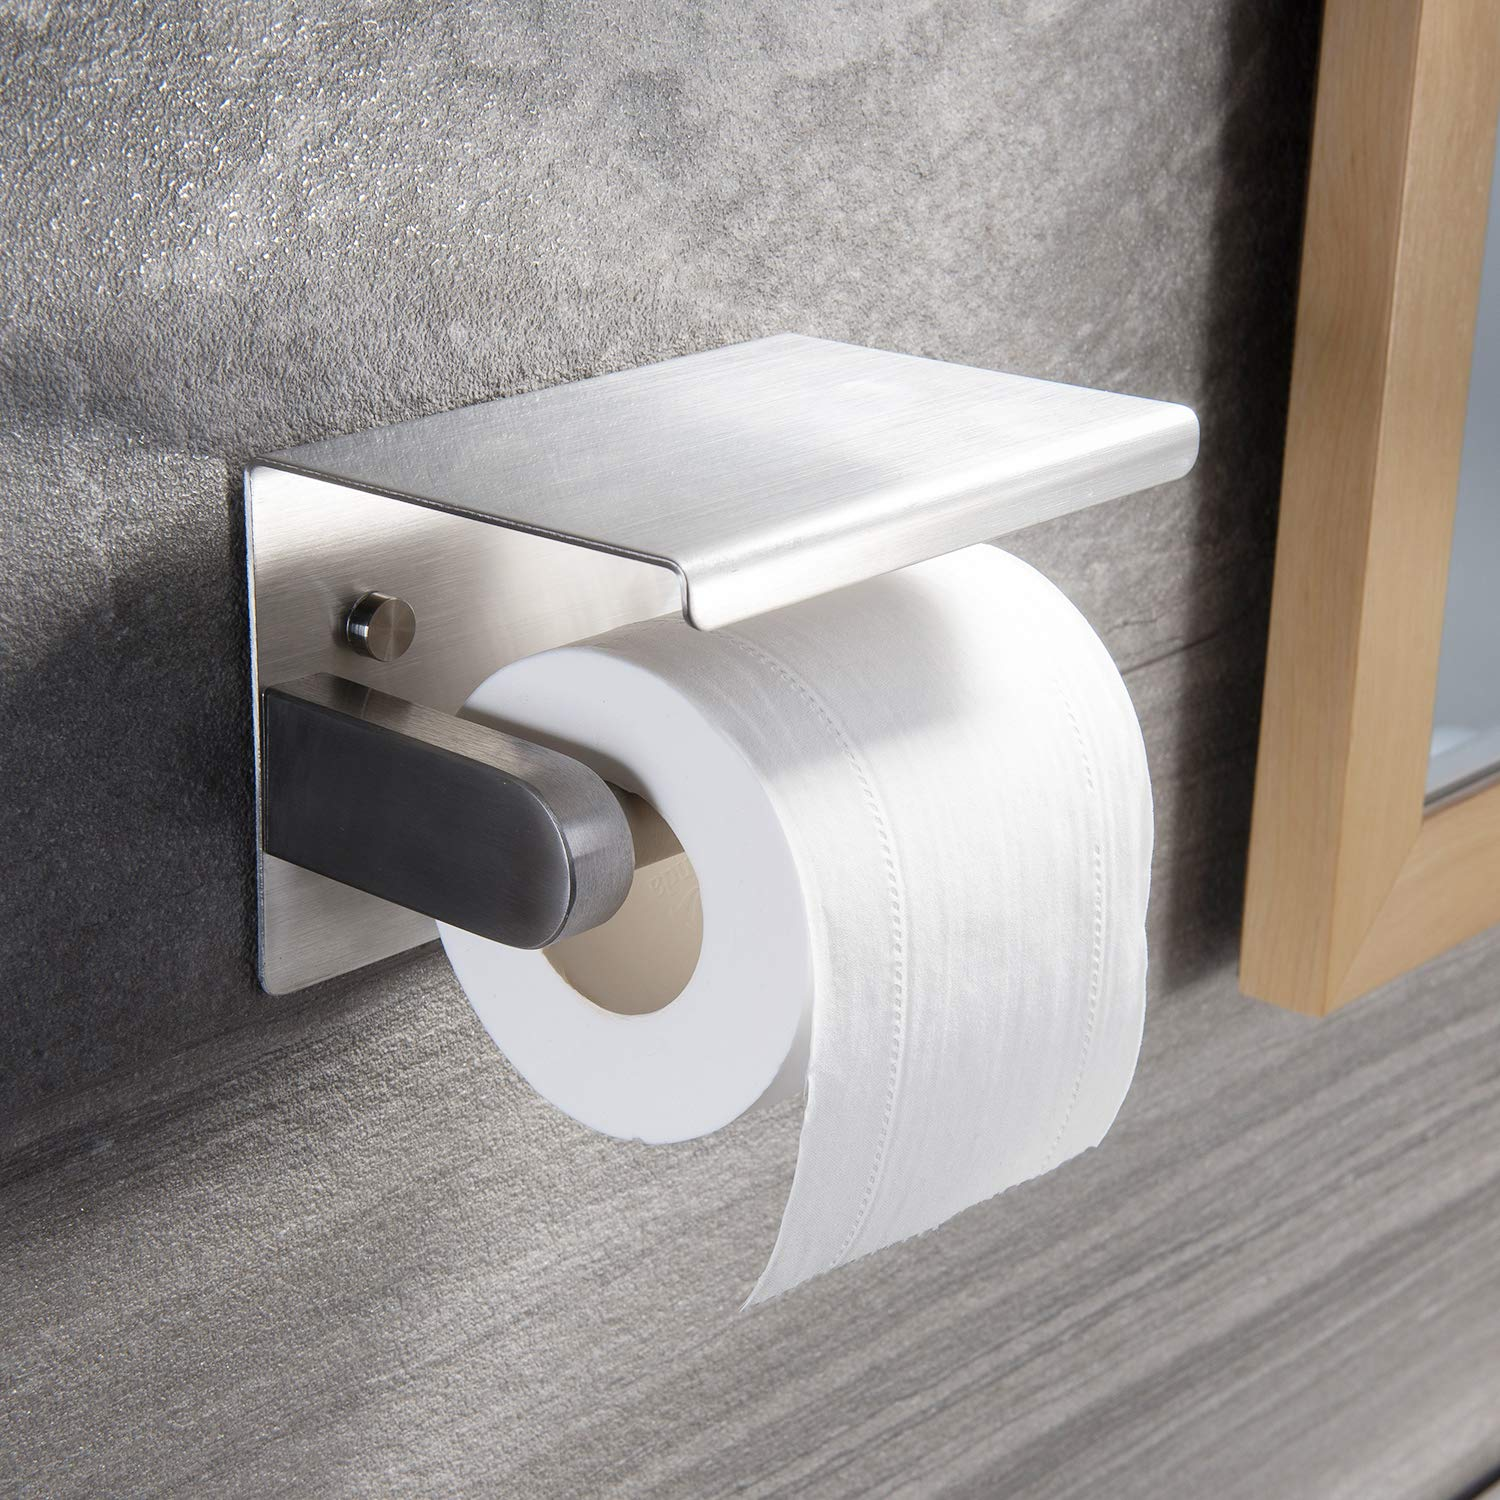 YIGII Toilet Paper Holder Stainless Steel Toilet Tissue Roll Holder Brushed Wall Mounted